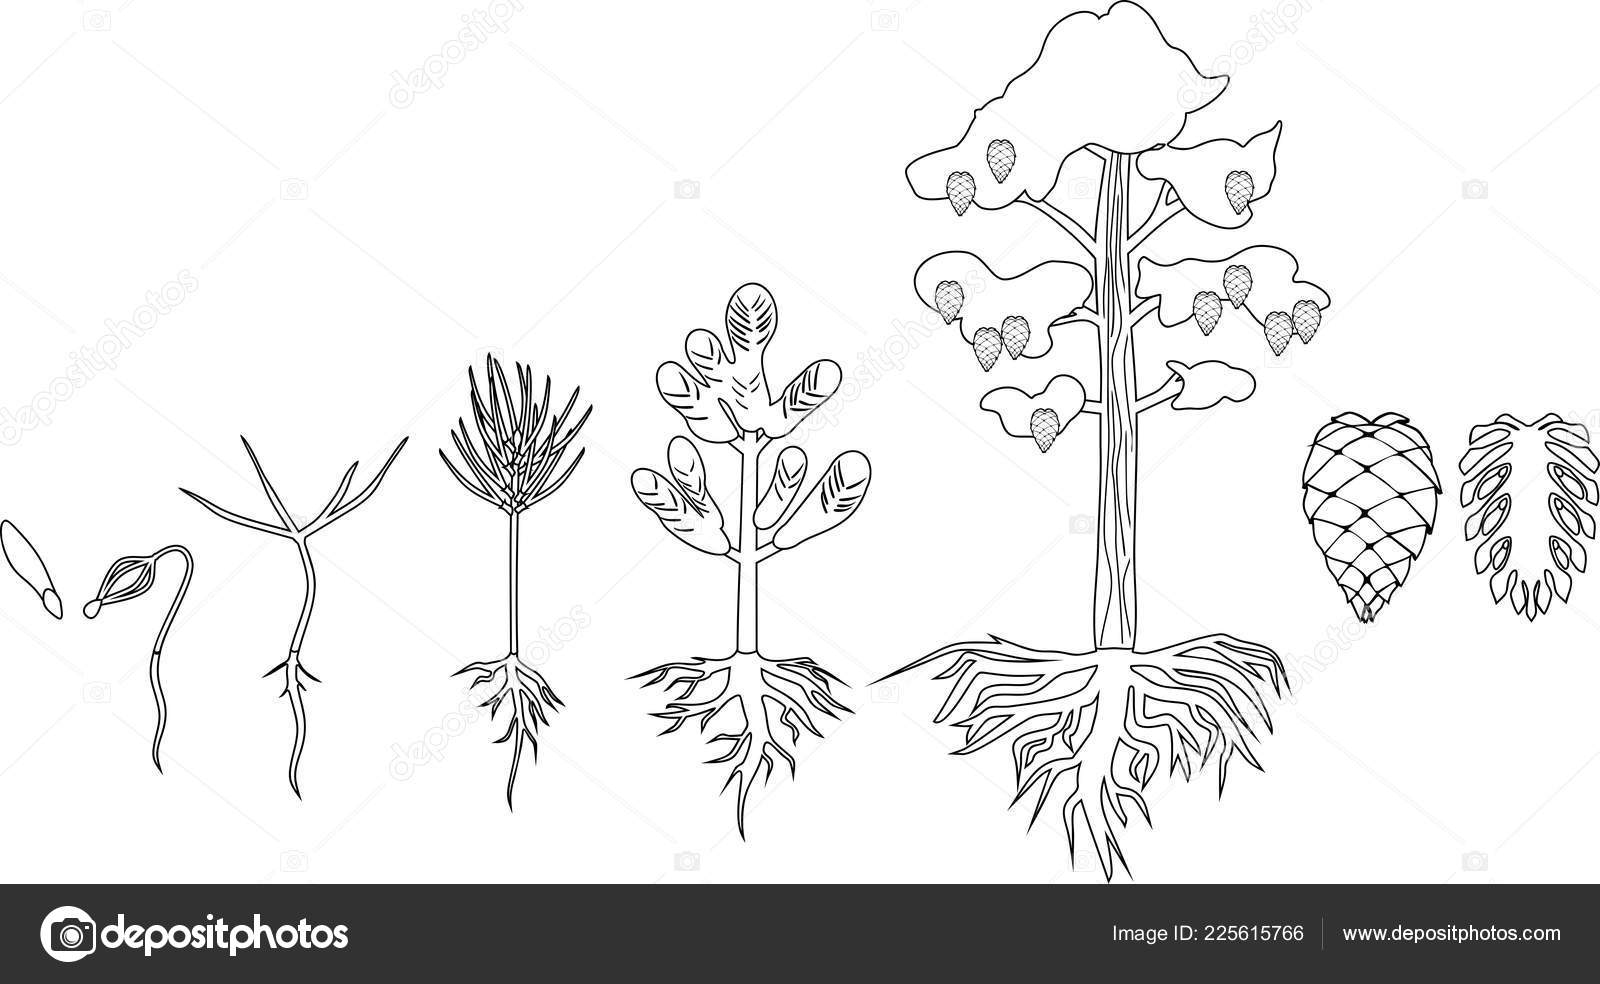 Coloring Pages Kids 2020: 31 Plant Life Cycle Coloring Pages